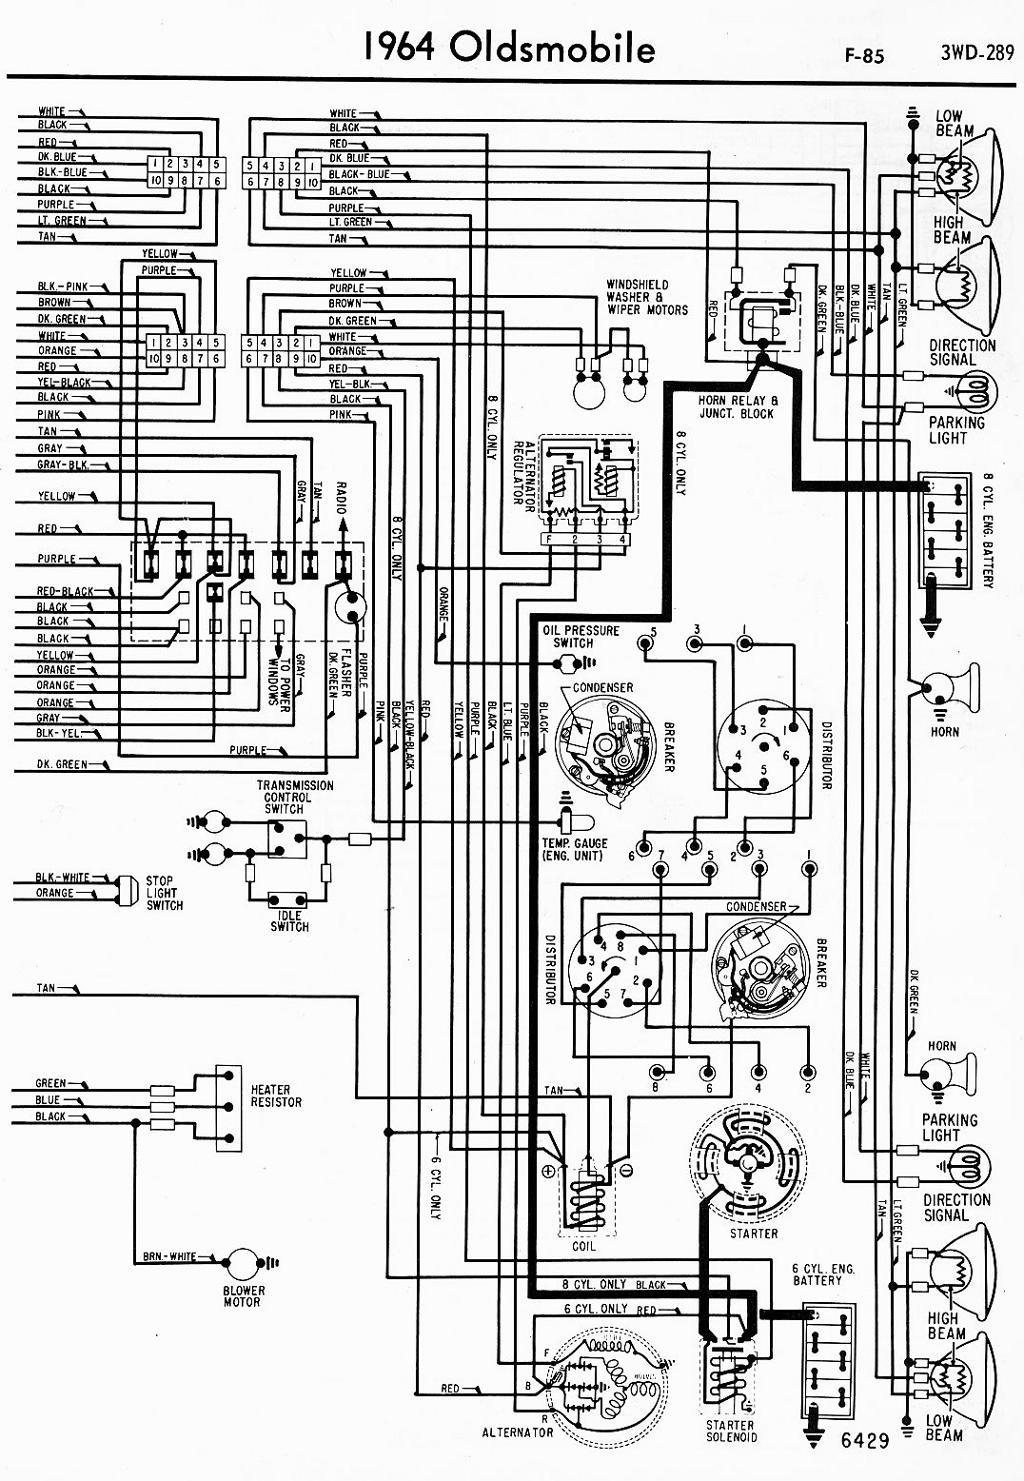 Wiring Diagram 1969 Oldsmobile 442 Libraries 1965 Dodge Dart Todays1971 Cutlass Library